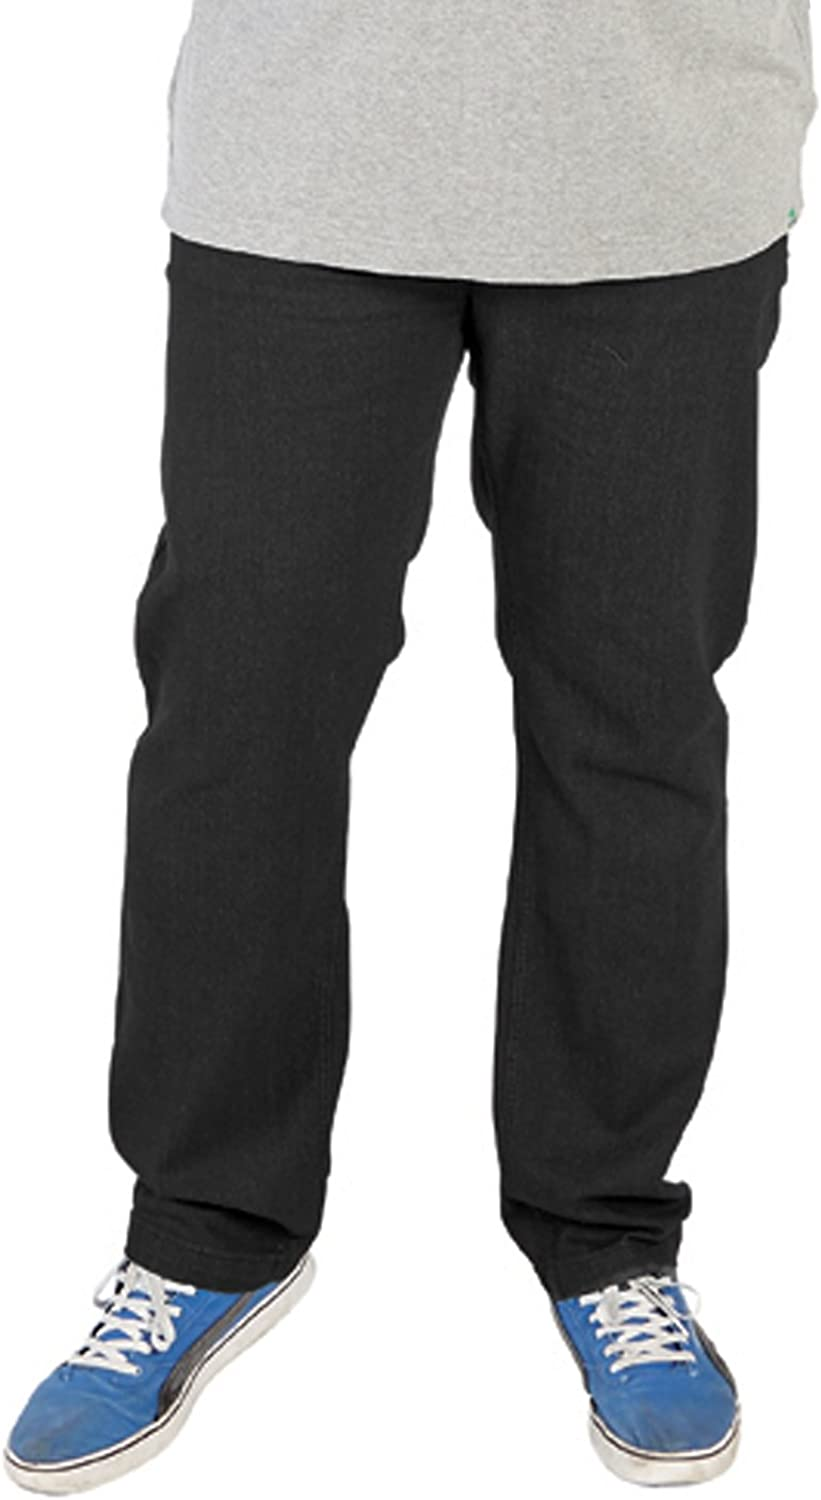 Rockford New Mens Stretch Jeans Comfort Fit Big /& Tall King Large Size Black Blue